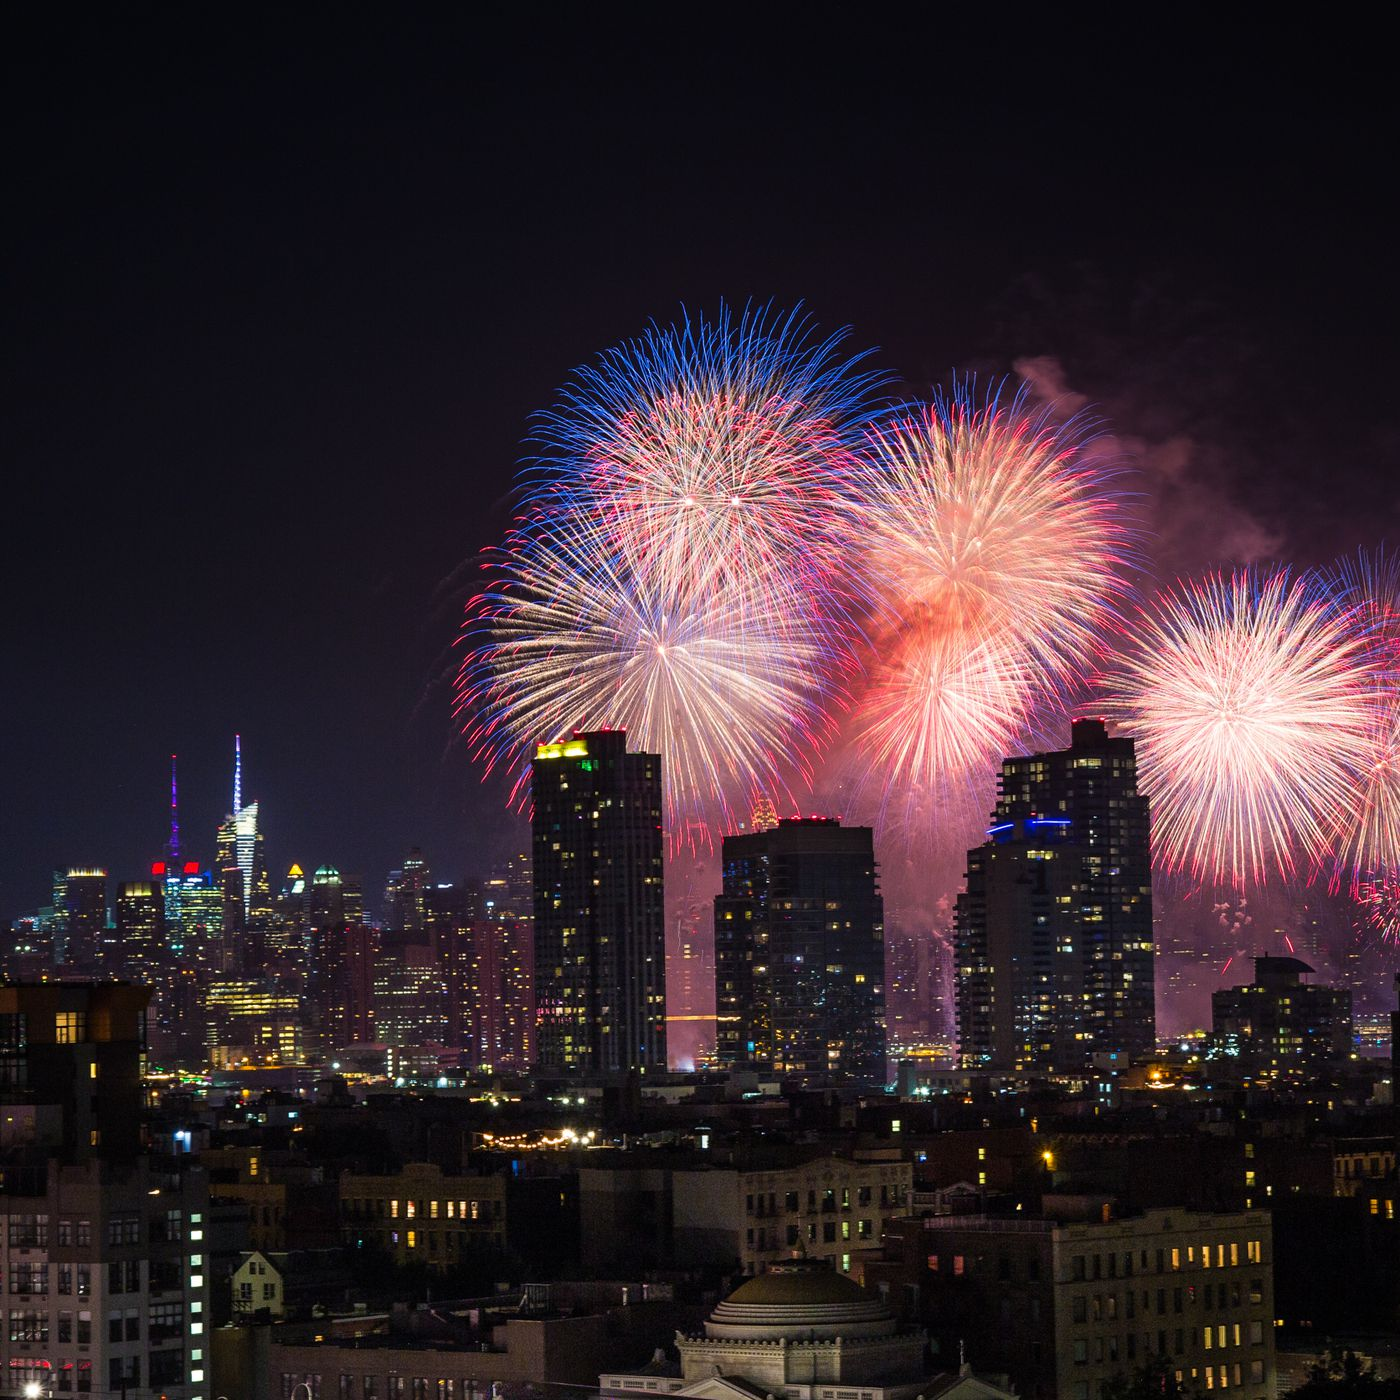 Macy's 4th of July Fireworks in NYC: Where to watch - Curbed NY on nyc street map, manhattan bus map, east river ny map, western new york ny map, east river park map, east river park ny, northern boulevard flushing ny map, east river station, whitestone new york map, east river nyc map, ctaf frequency map, east river greenpoint map, long island city street map, east river running map, new york new jersey rivers map, east river bronx map, east river colorado map, east river bridges map, east river ferry map, east river manhattan map,